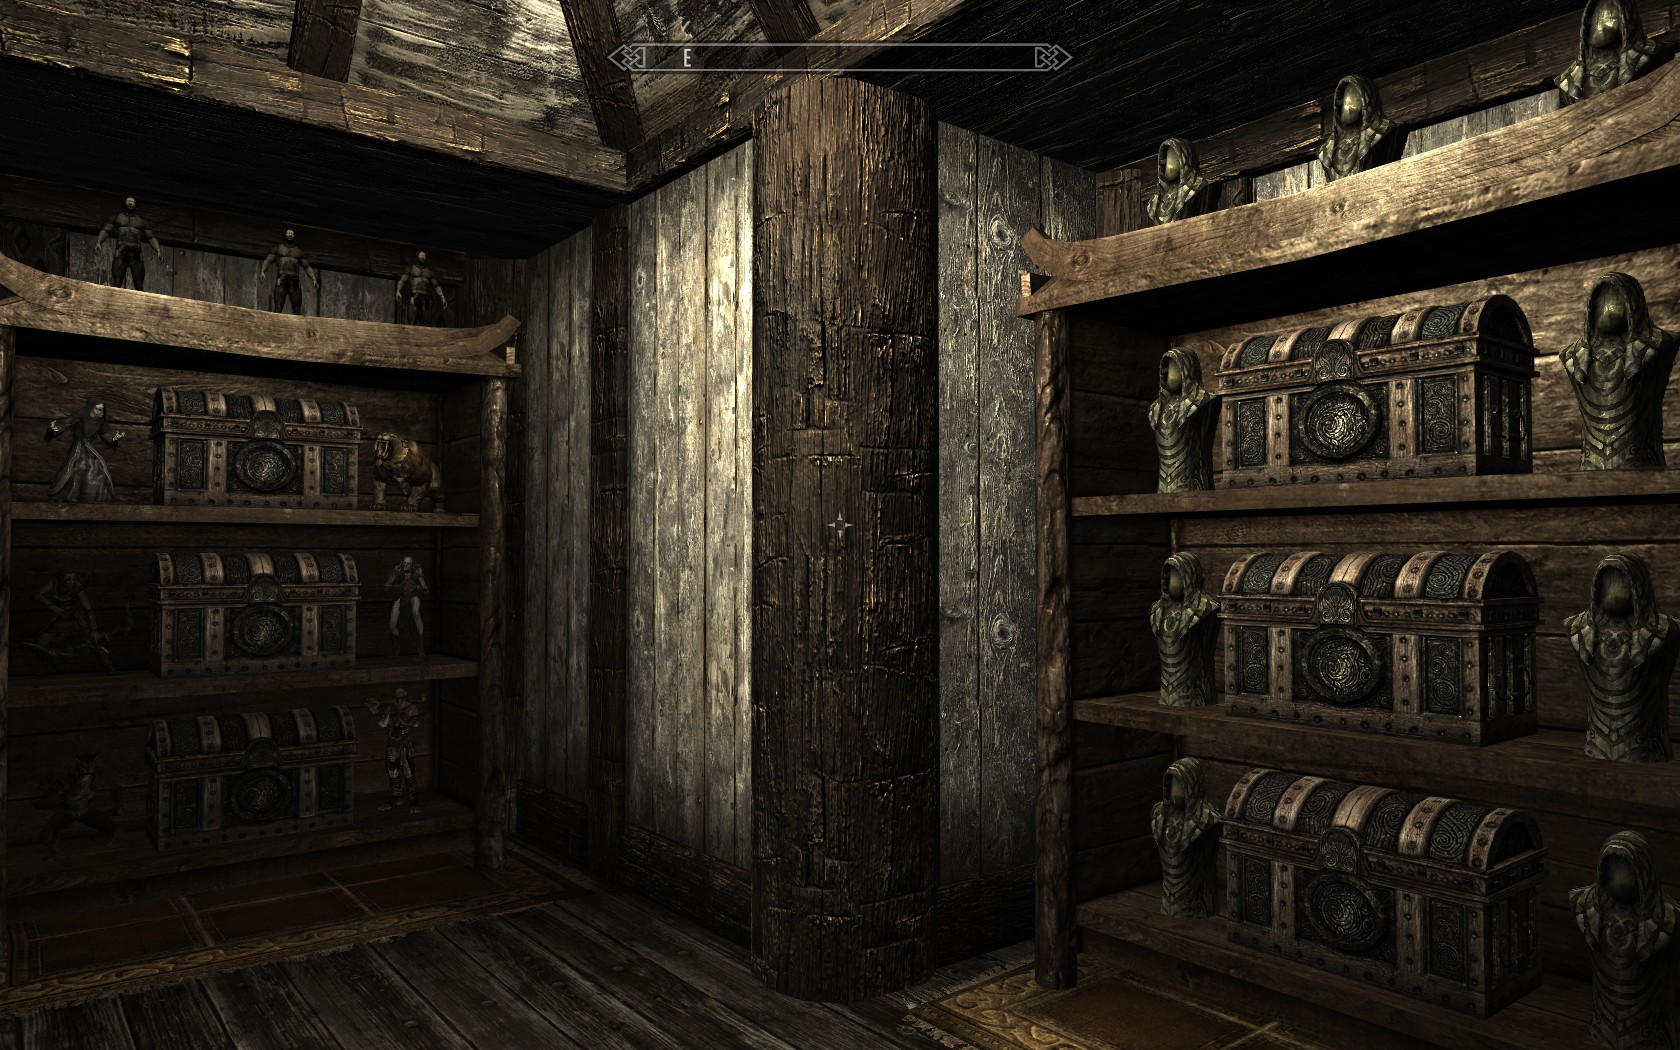 Skyrim Hearthfire Storage Room My Picks For Some Of The Coolest Skyrim